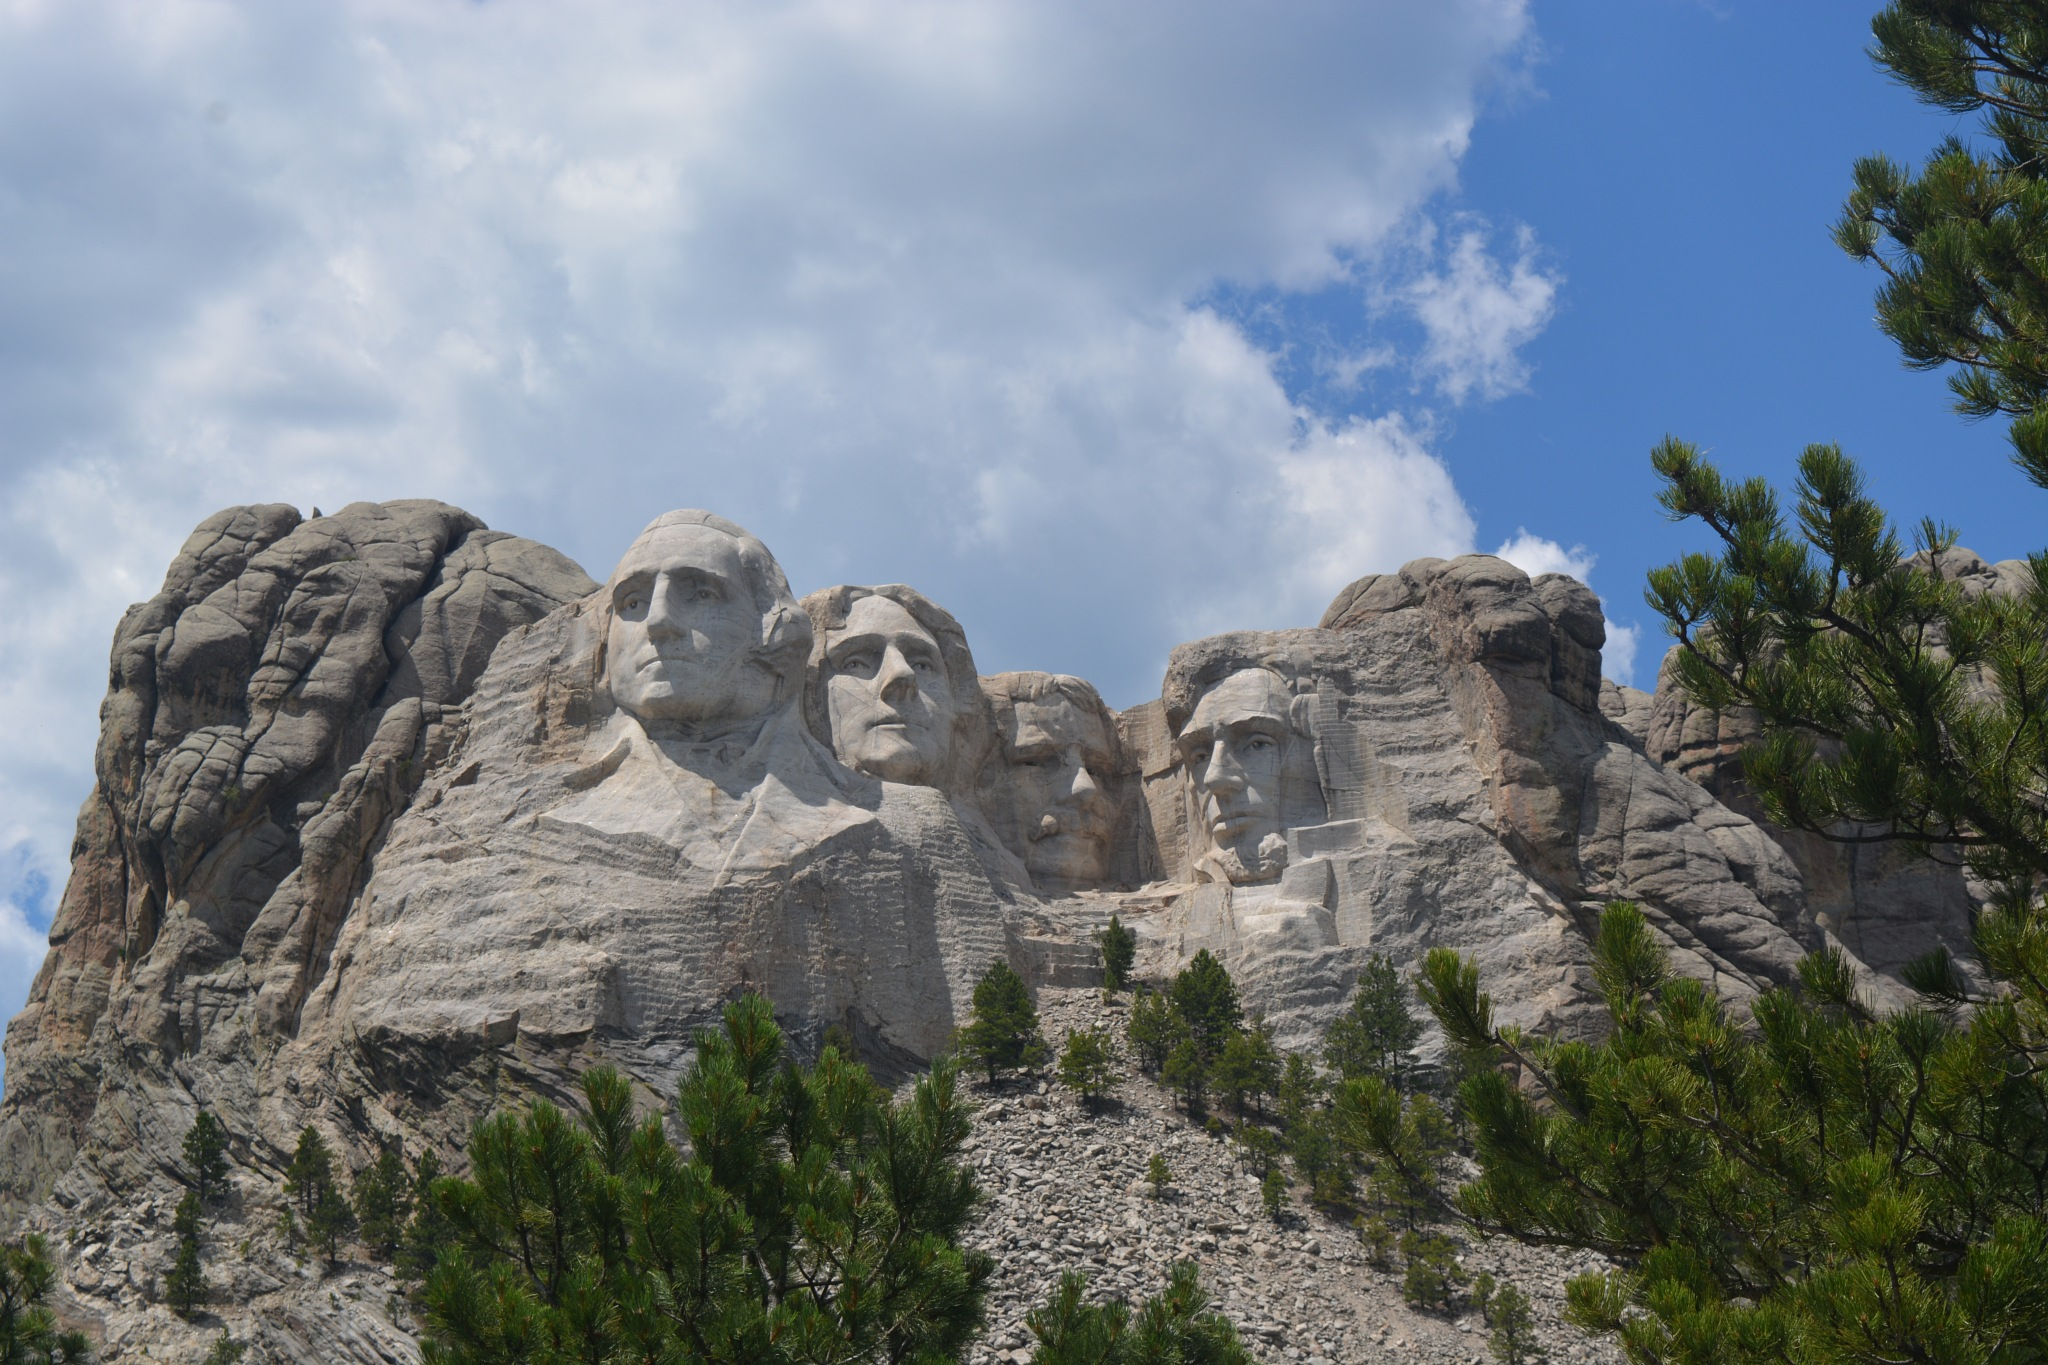 Mount Rushmore National Memorial by Gerardo Reyes